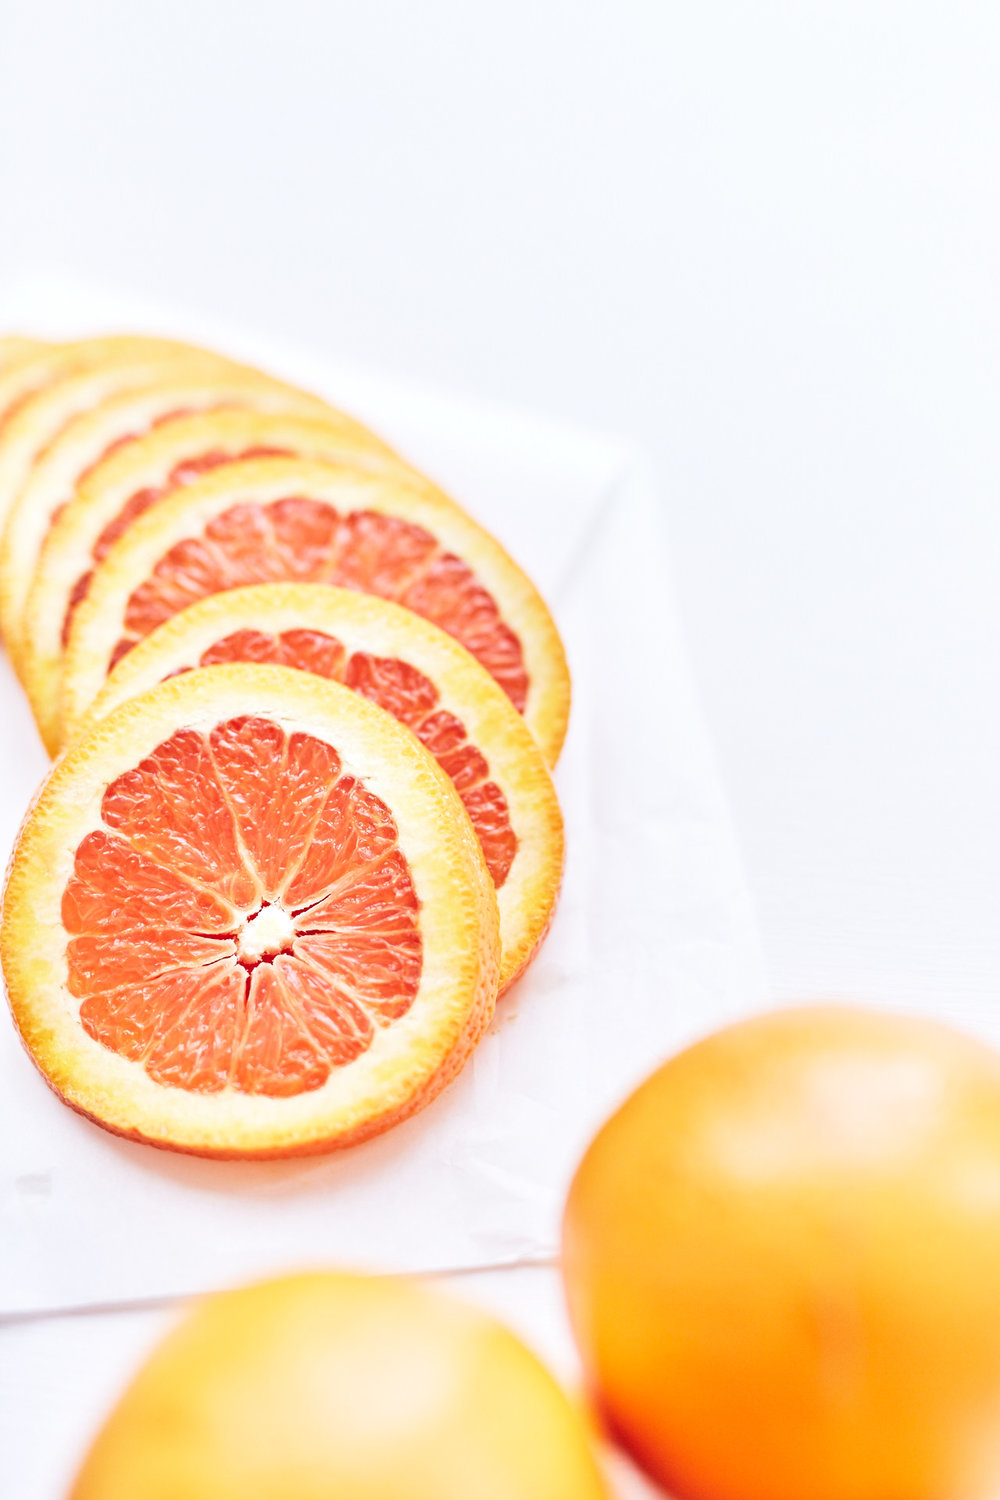 Oranges are in season and so delicious